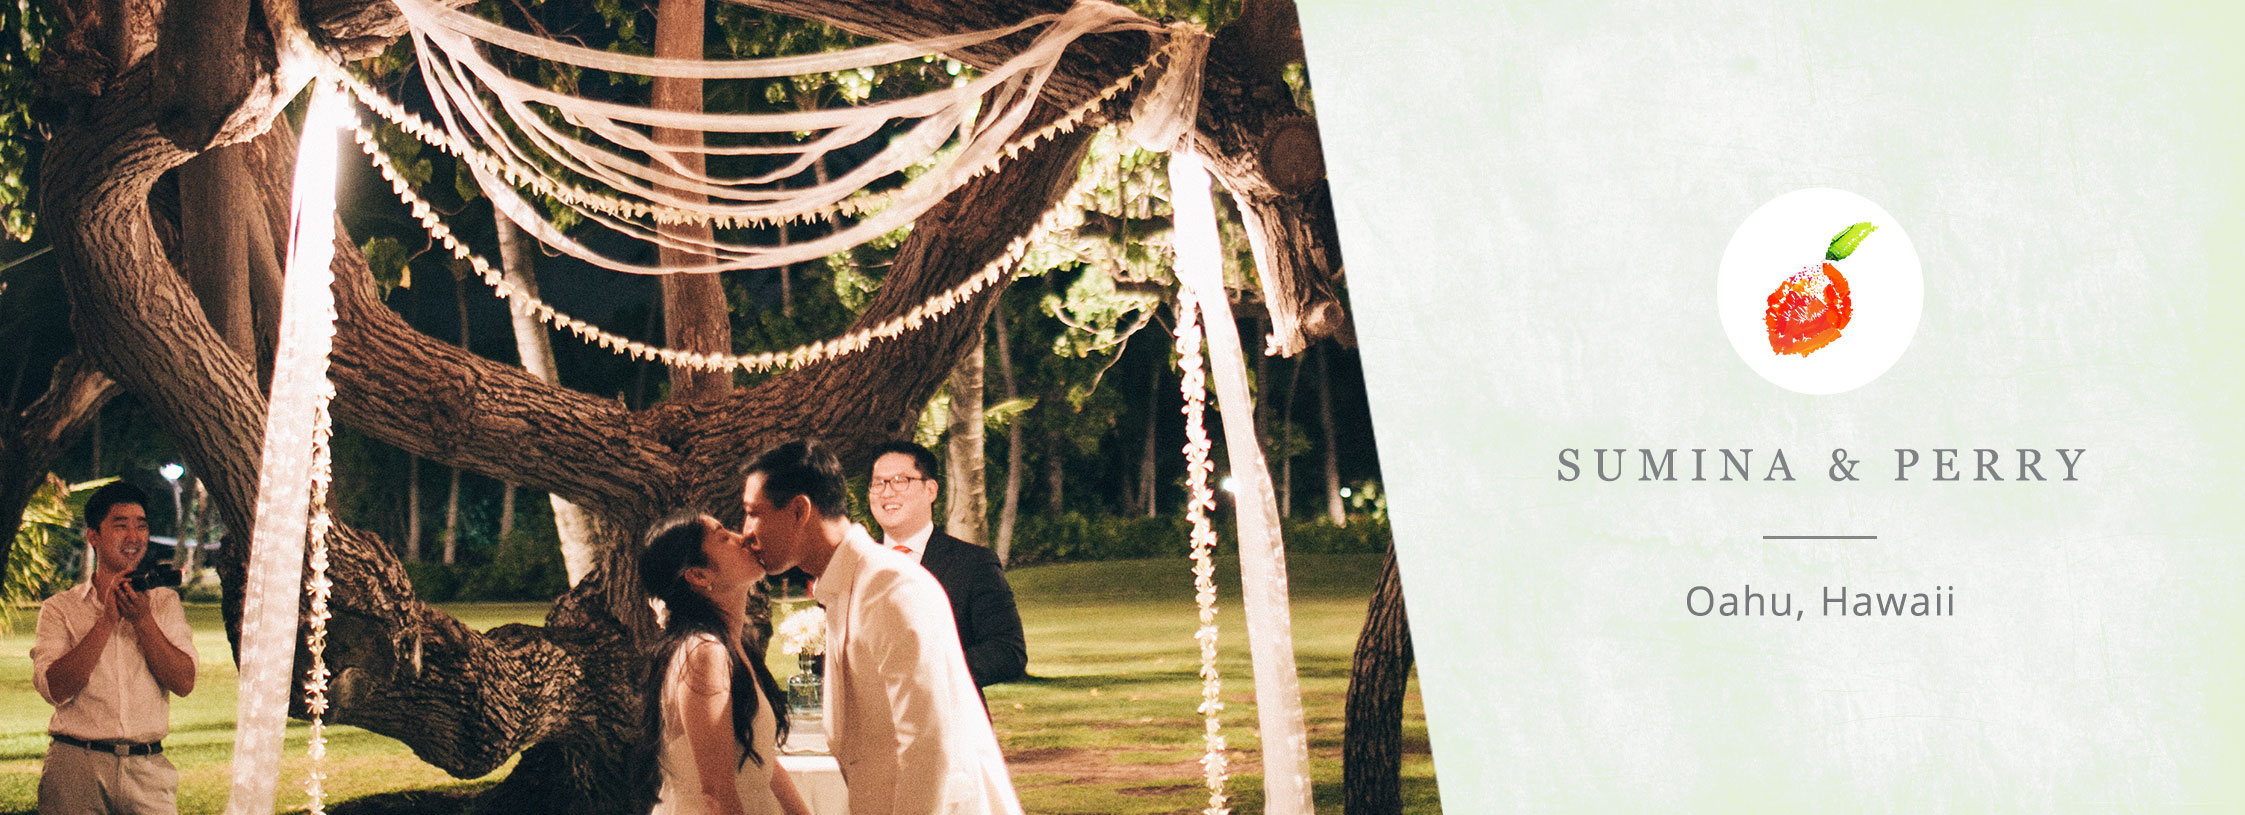 Night wedding ceremony kiss at a Hawaii destination wedding by Destination wedding planner Mango Muse Events